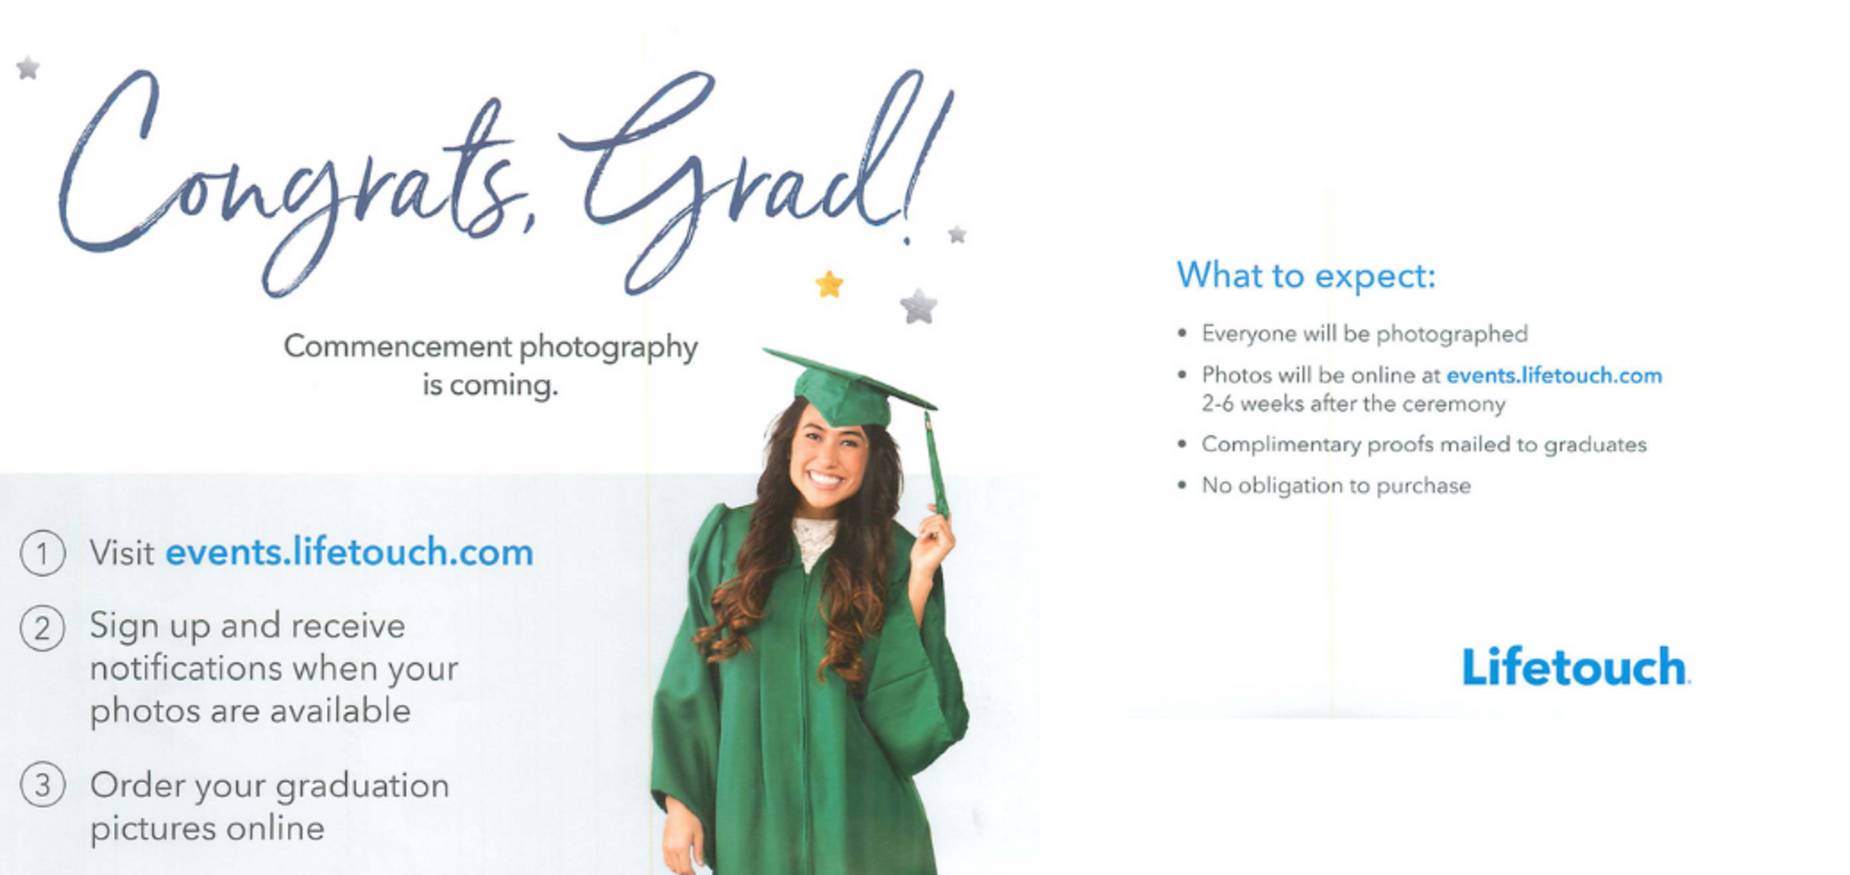 commencement photography is coming. visit events.lifetouch.com to sign up for notifications and order graduation pictures online